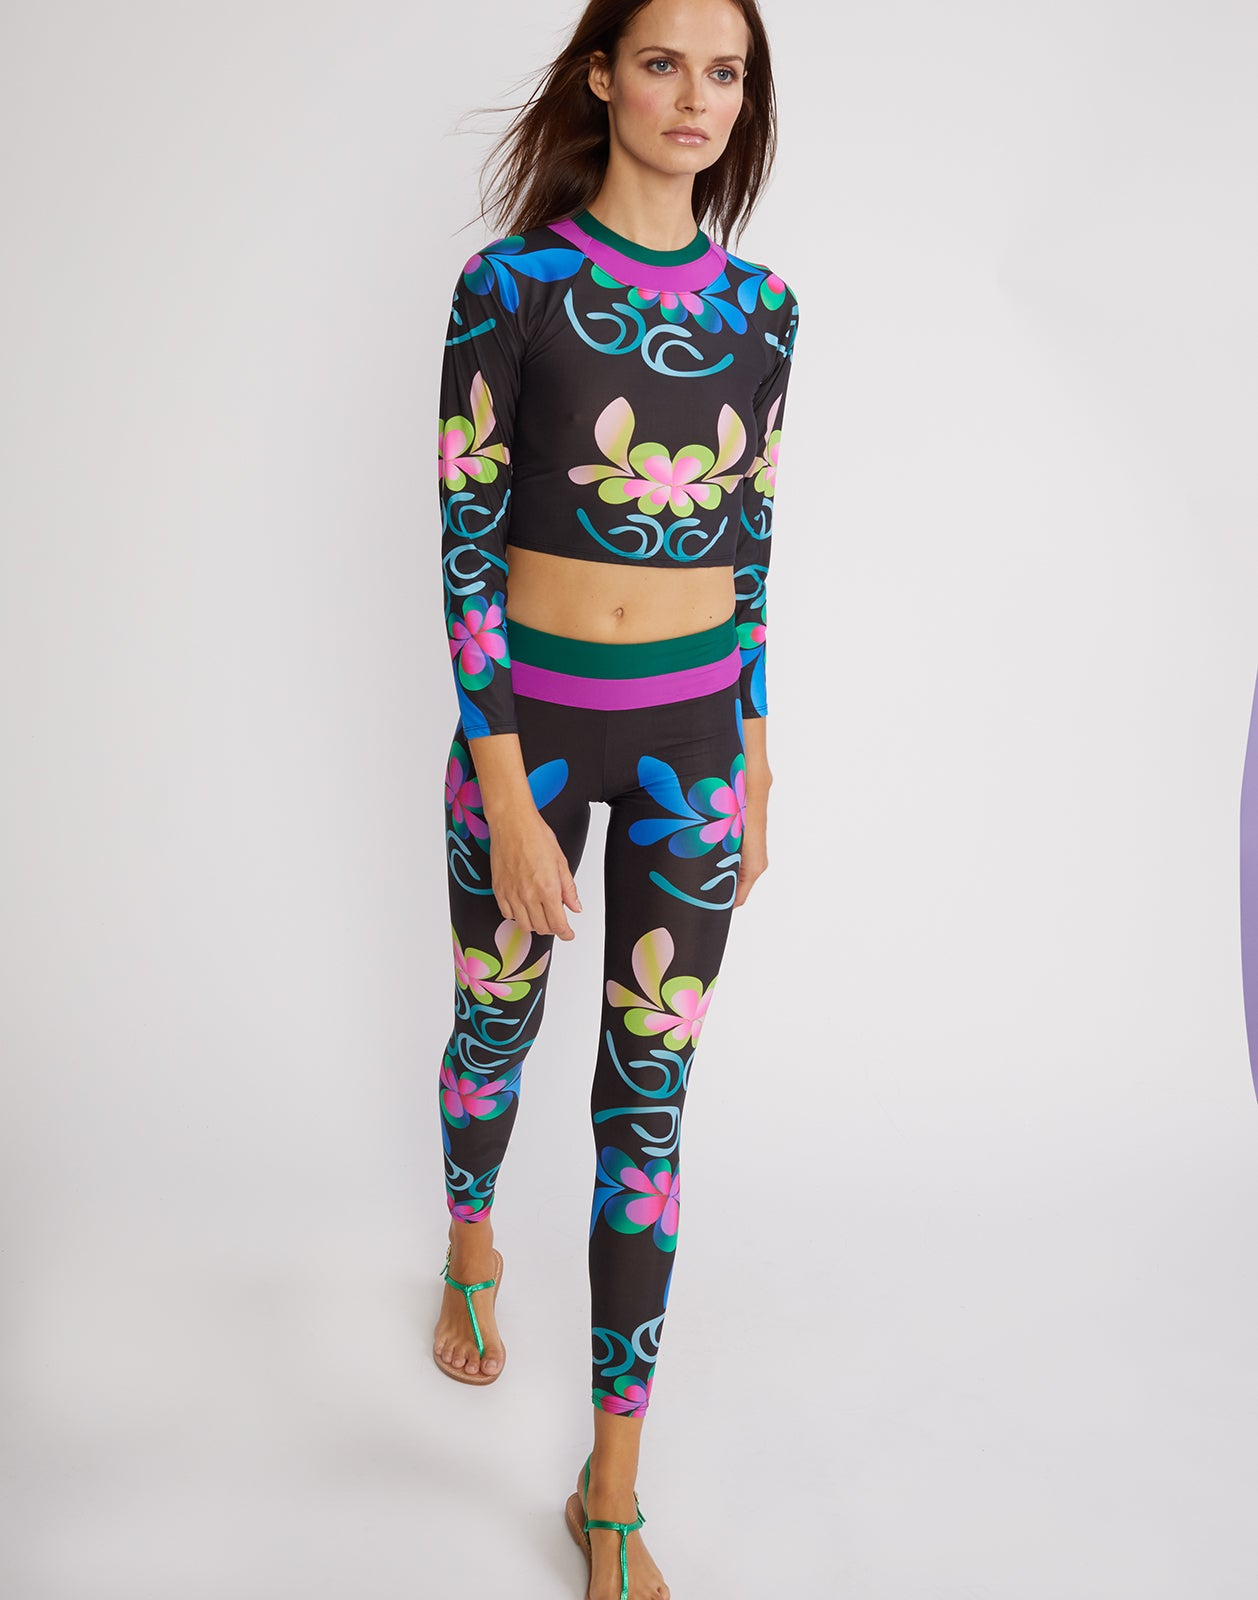 Front view of the electric floral print surf and fitness top.